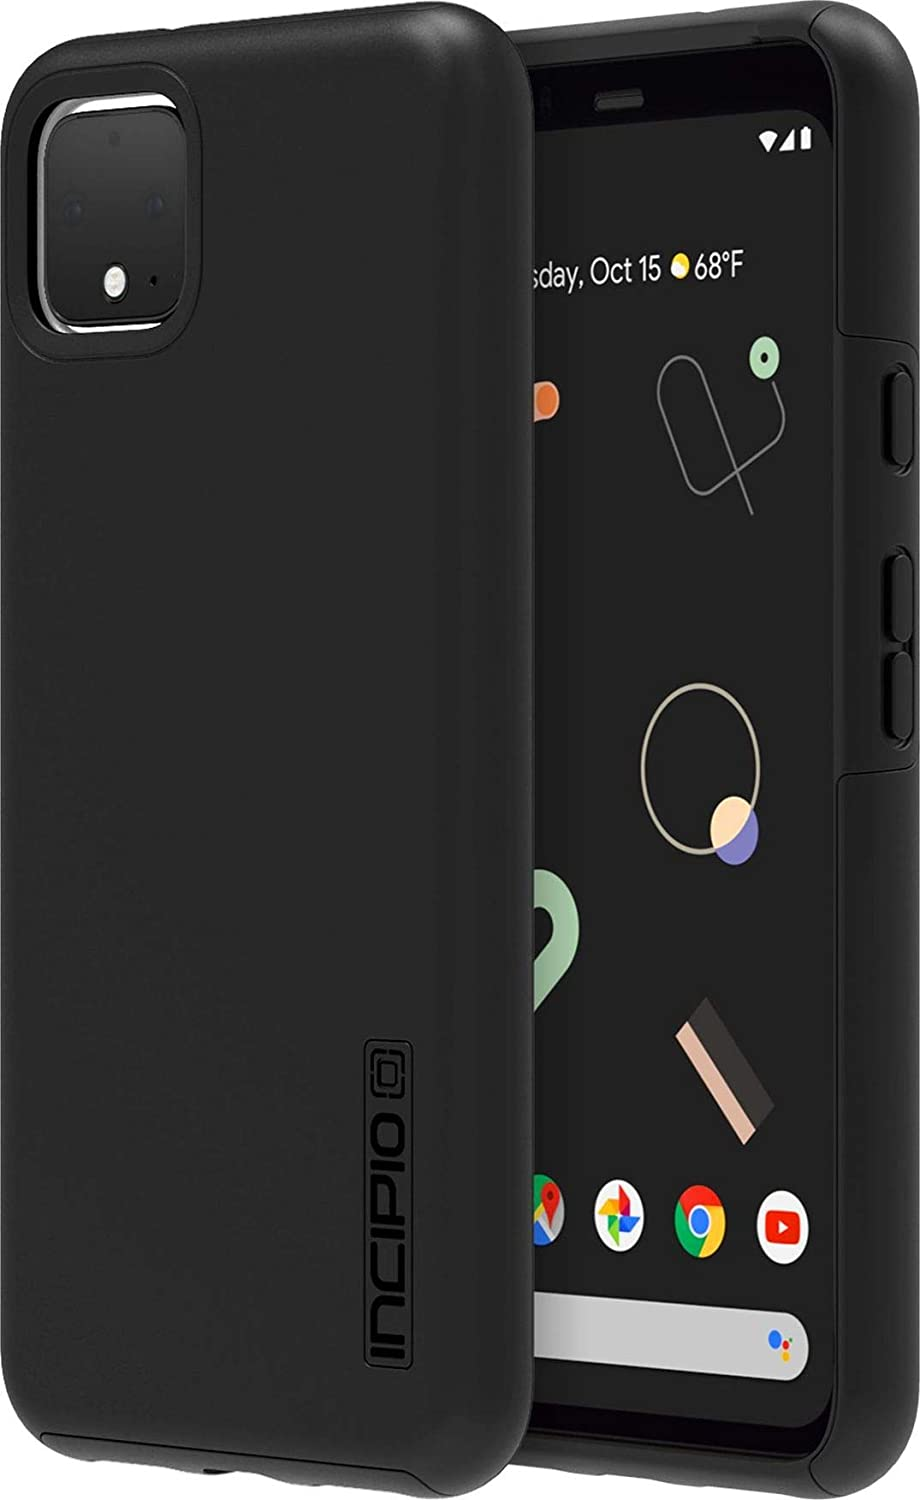 Incipio DualPro Case for Google Pixel 4 XL - Google Certified Protective Cover (Black) [Extremely Rugged I Shock Absorbing I Soft-Touch Coating I Hybrid] - GG-082-BLK